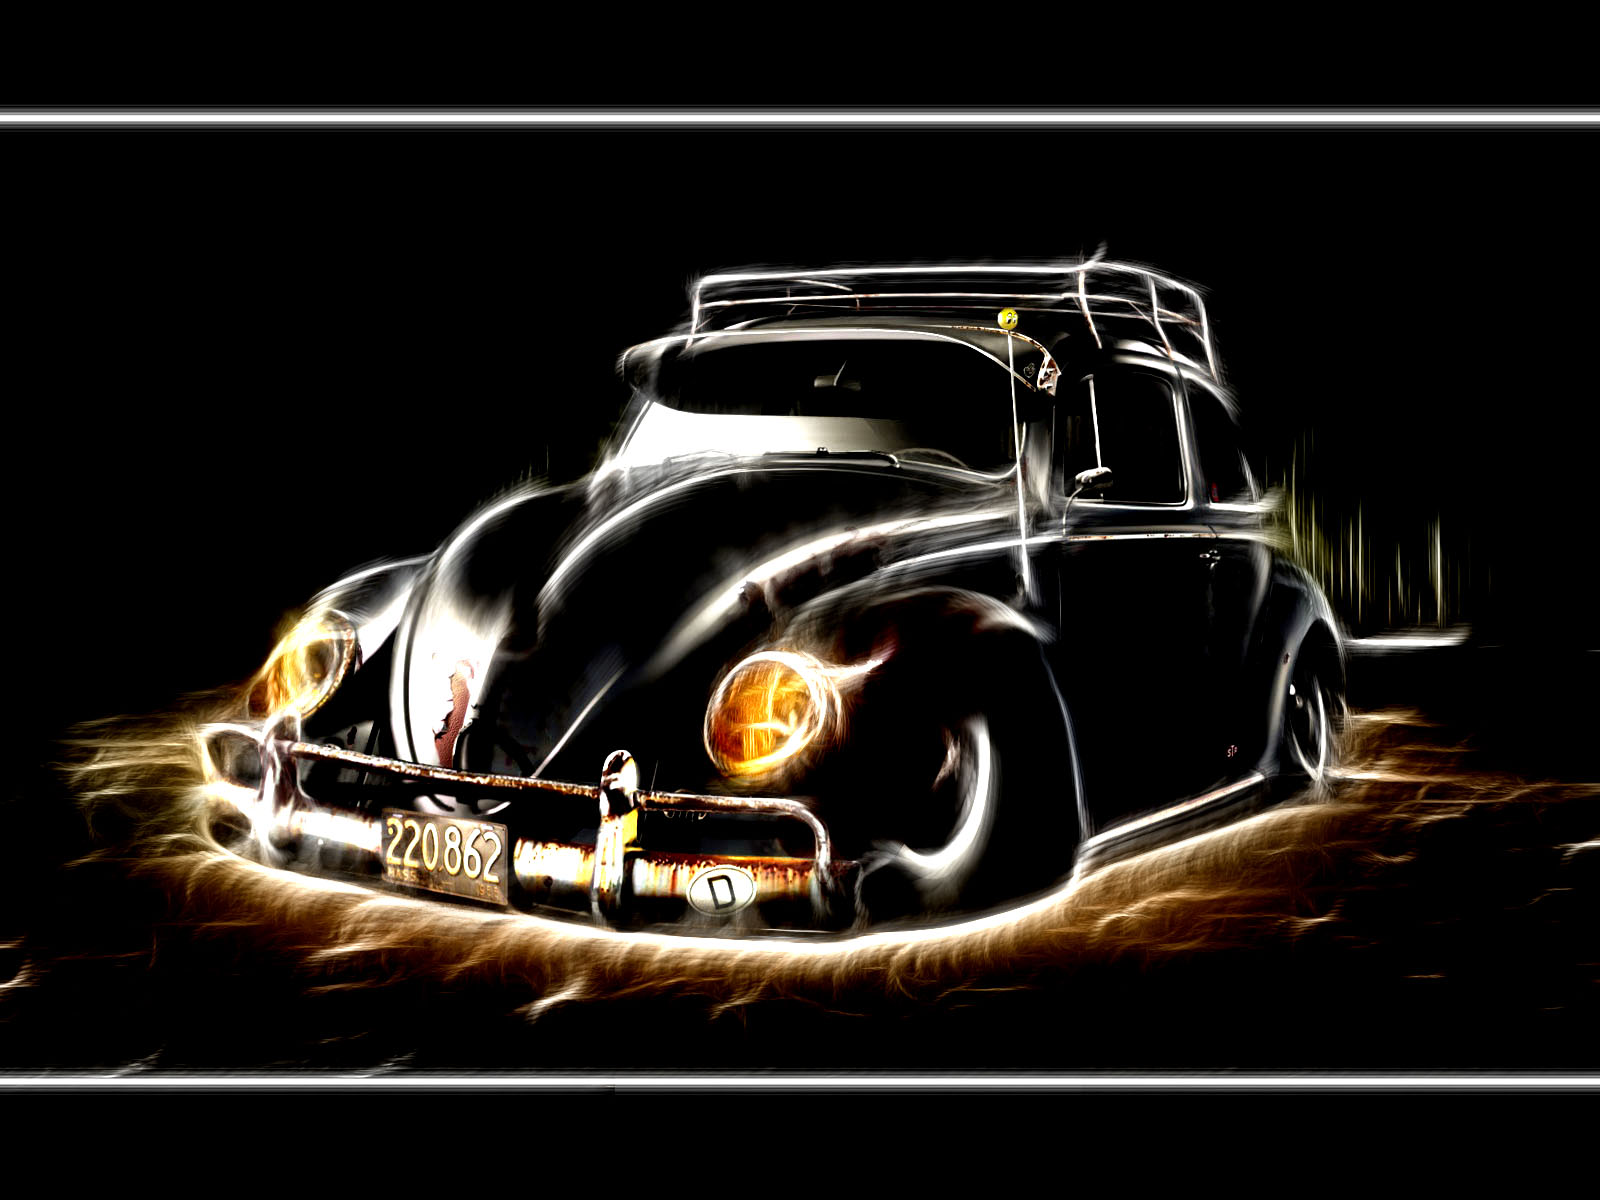 Volkswagen Beetle Computer Wallpapers Desktop Backgrounds 1600x1200 1600x1200